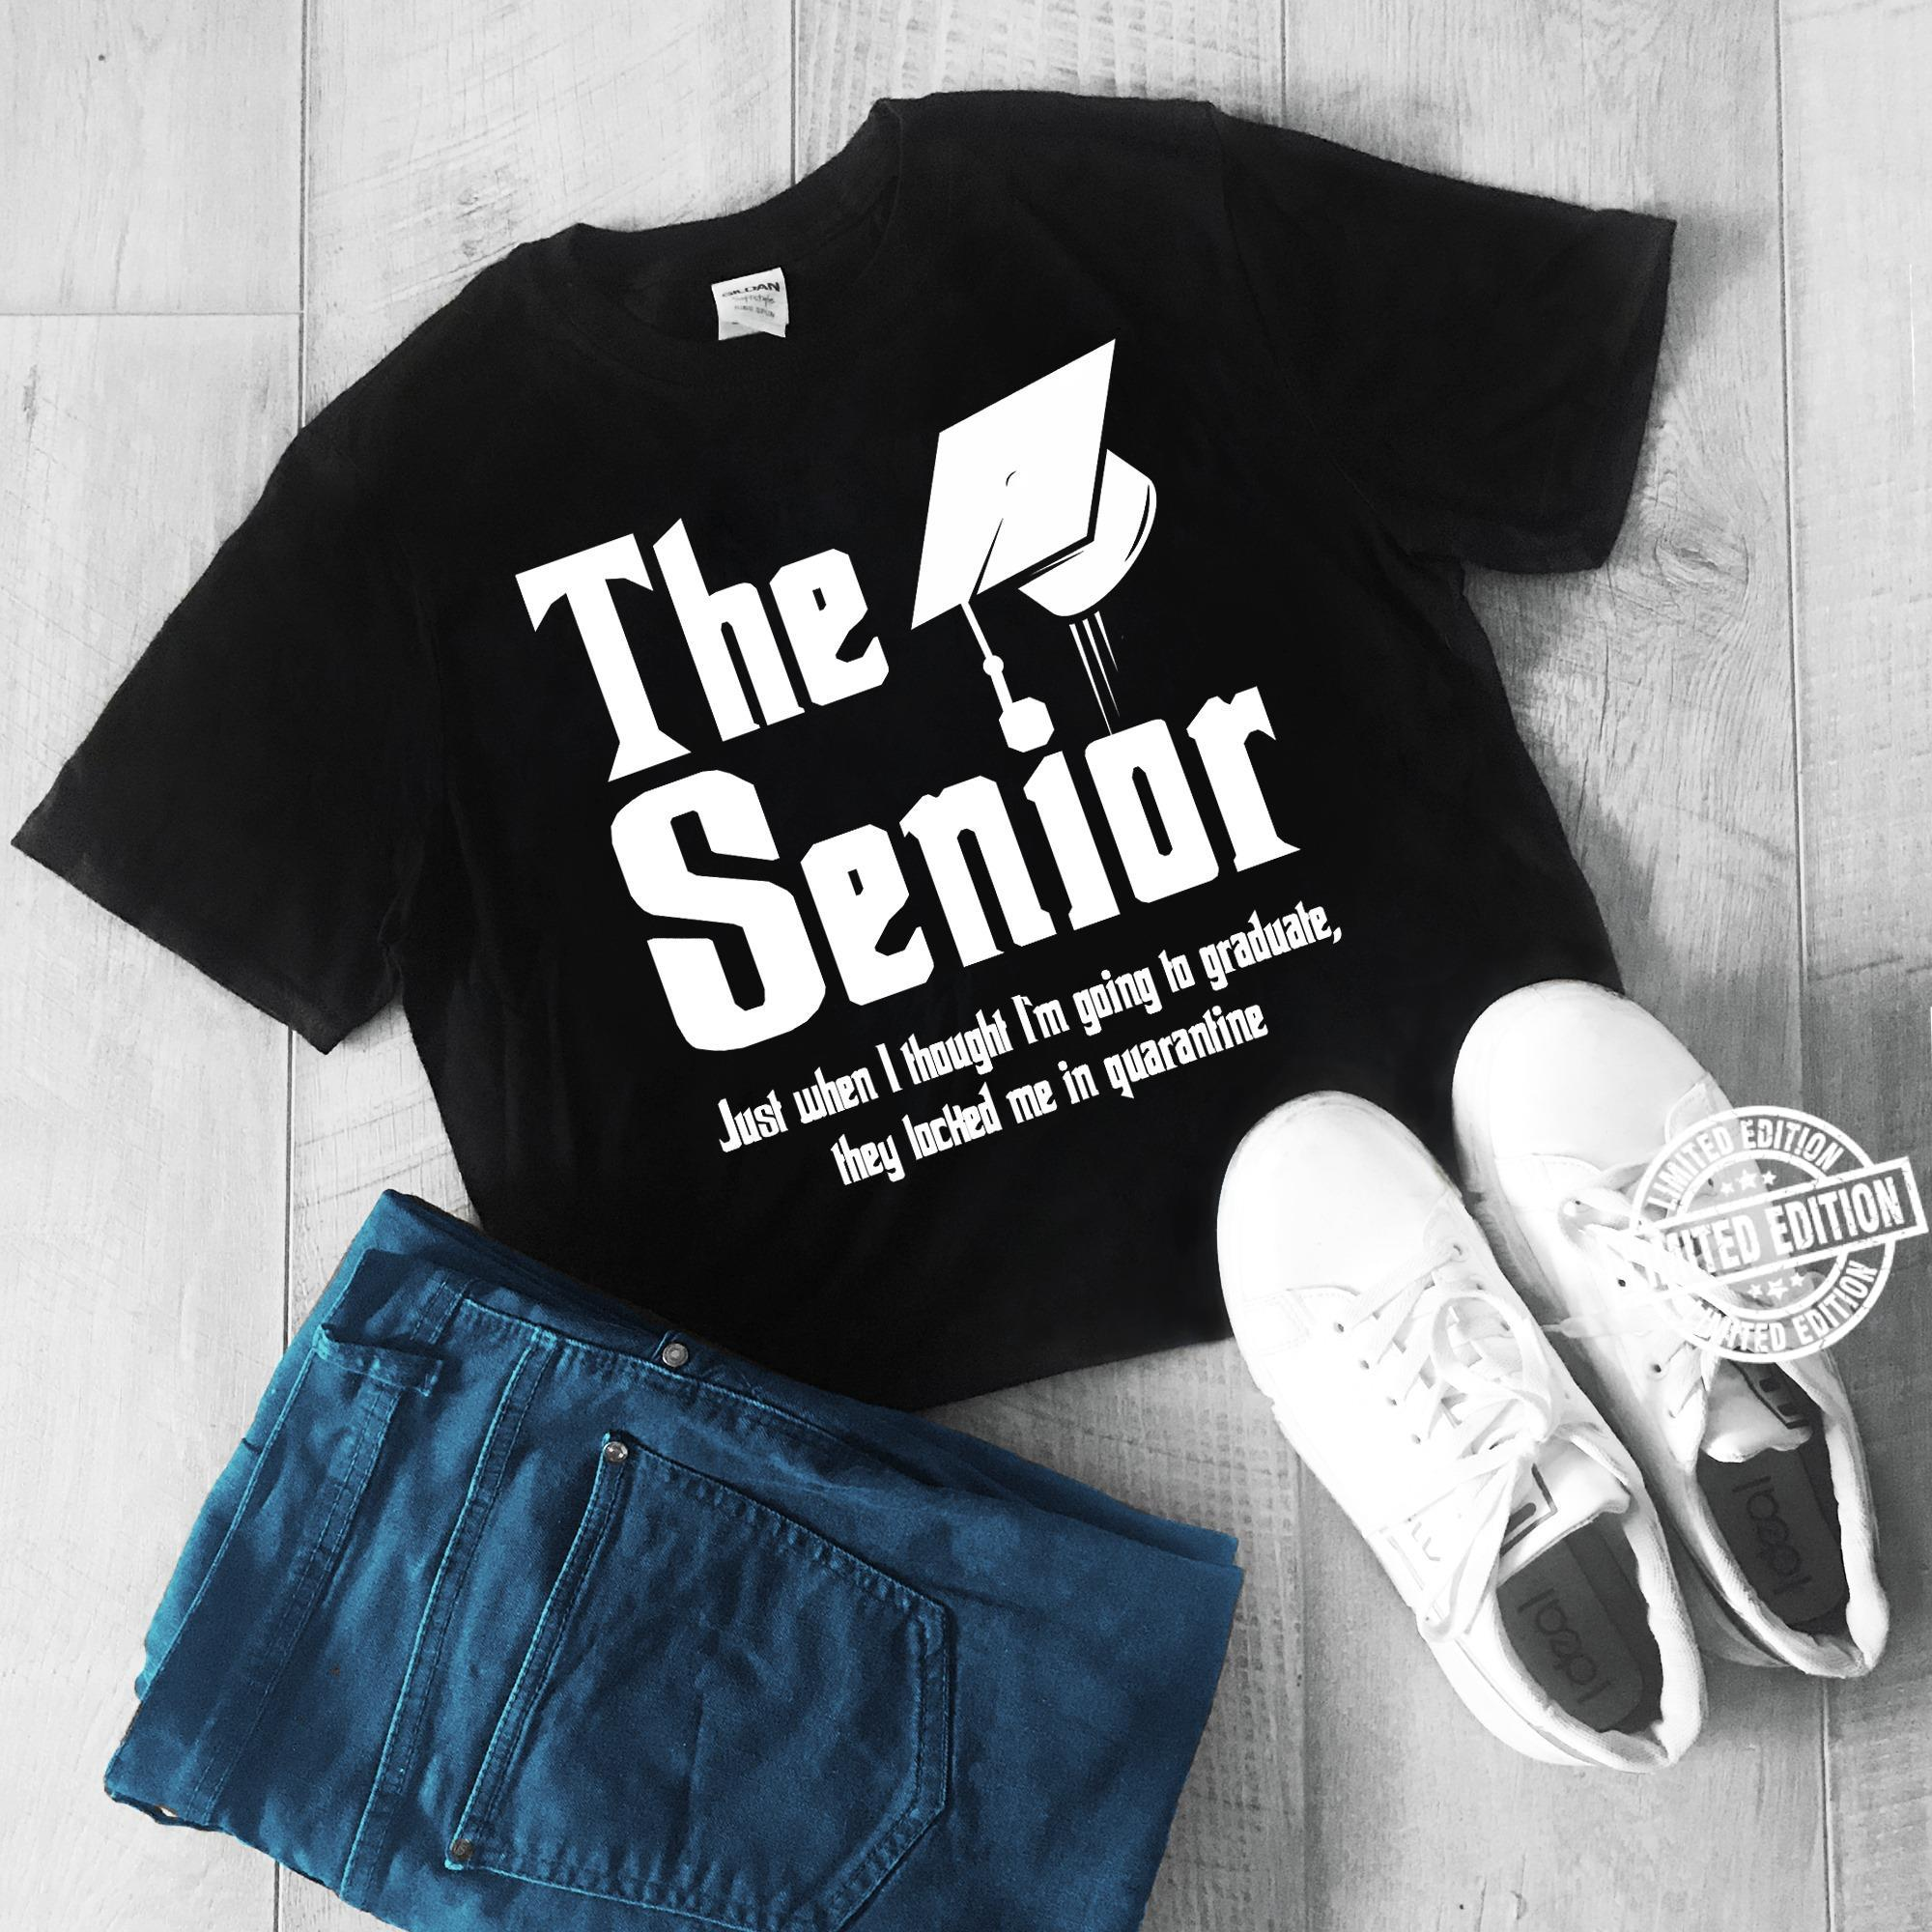 The senior just when I thought I'm going to graduete shirt